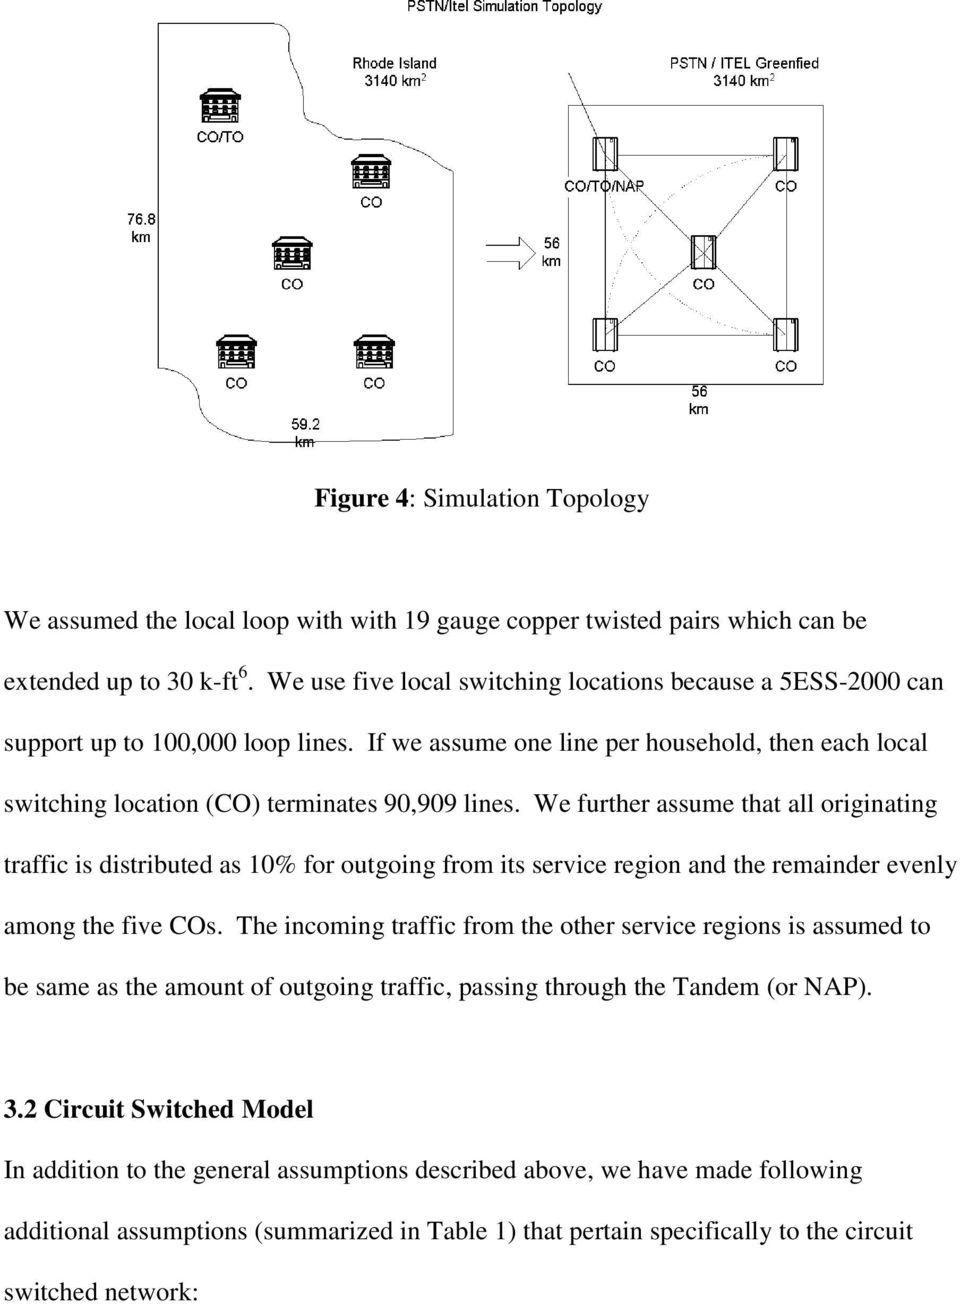 Internet Telephony Or Circuit Switched Which Is Cheaper Switching Diagram We Further Assume That All Originating Traffic Distributed As 10 For Outgoing From Its